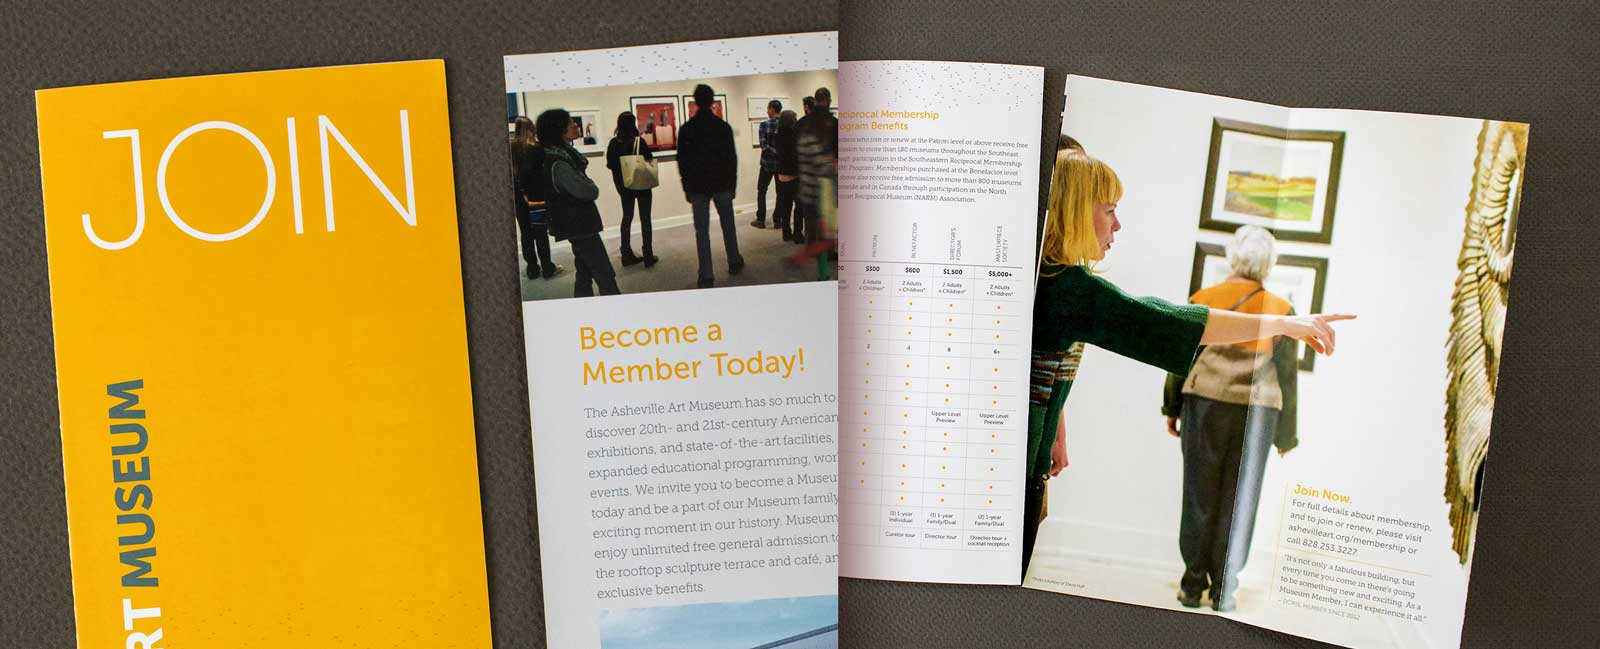 Detail cropped view of New Membership brochure for the Asheville Art Museum shows visitors viewing artworks and lists benefits of becoming a member.